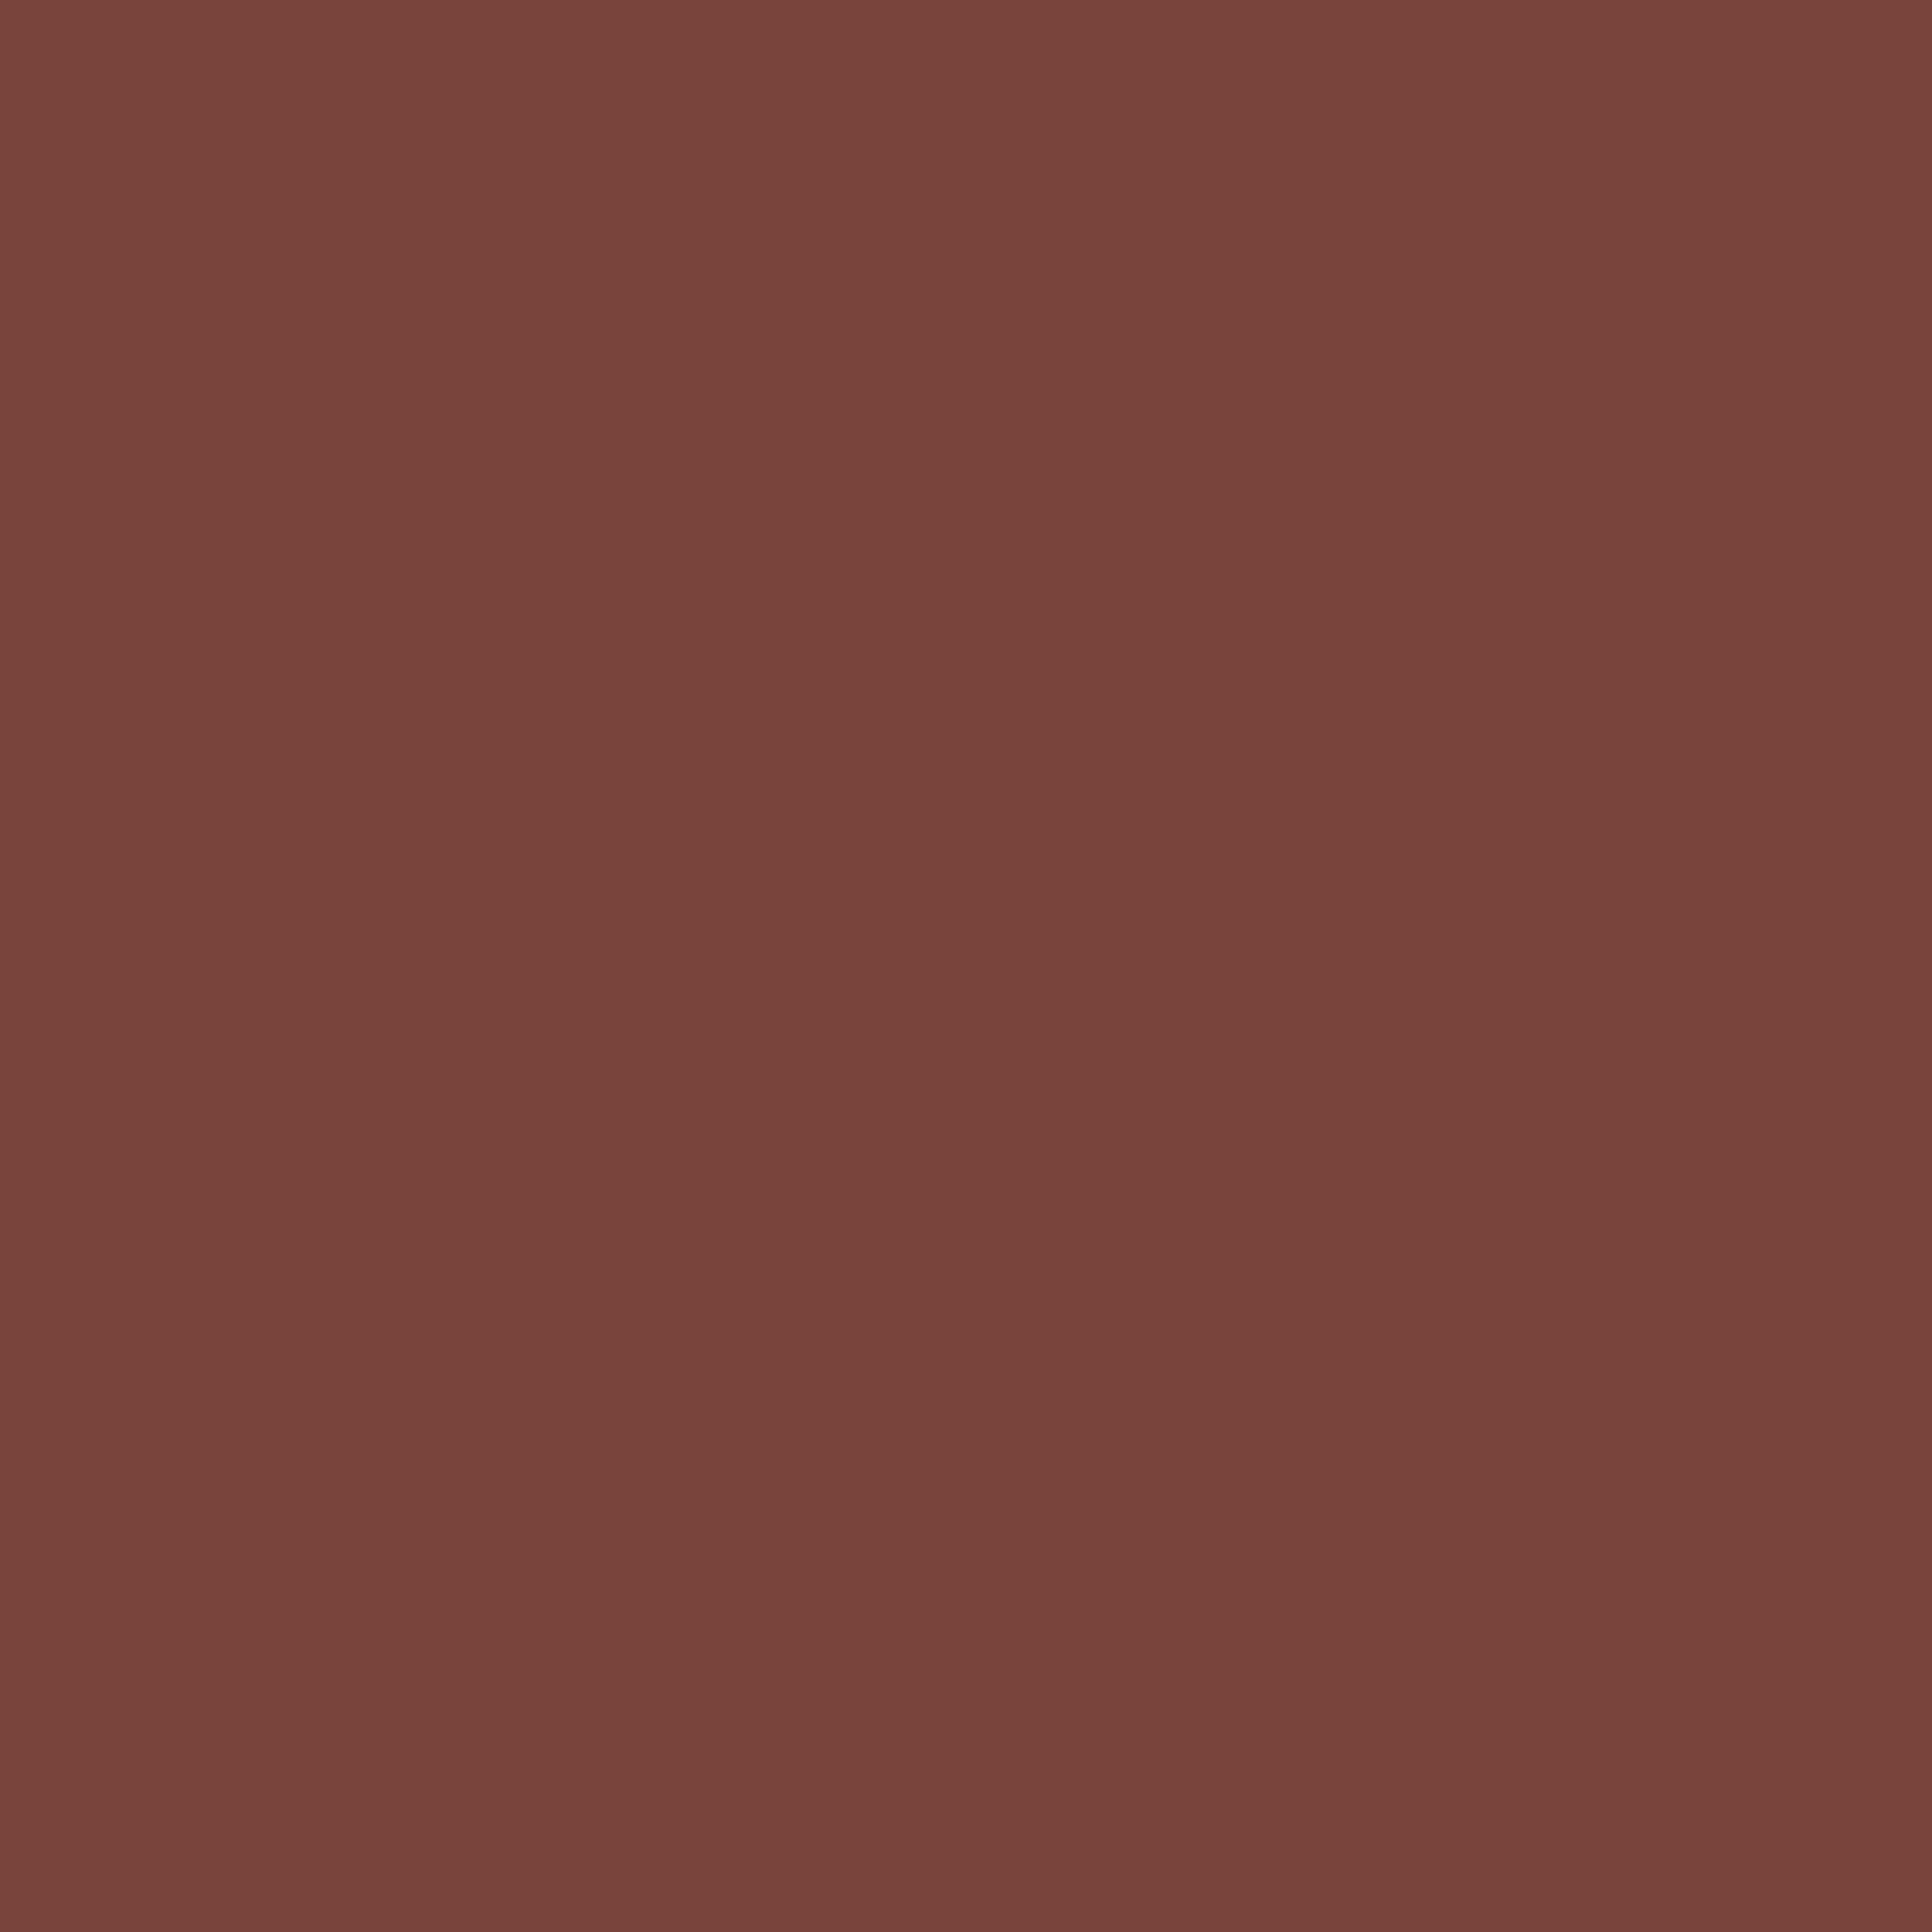 3600x3600 Bole Solid Color Background